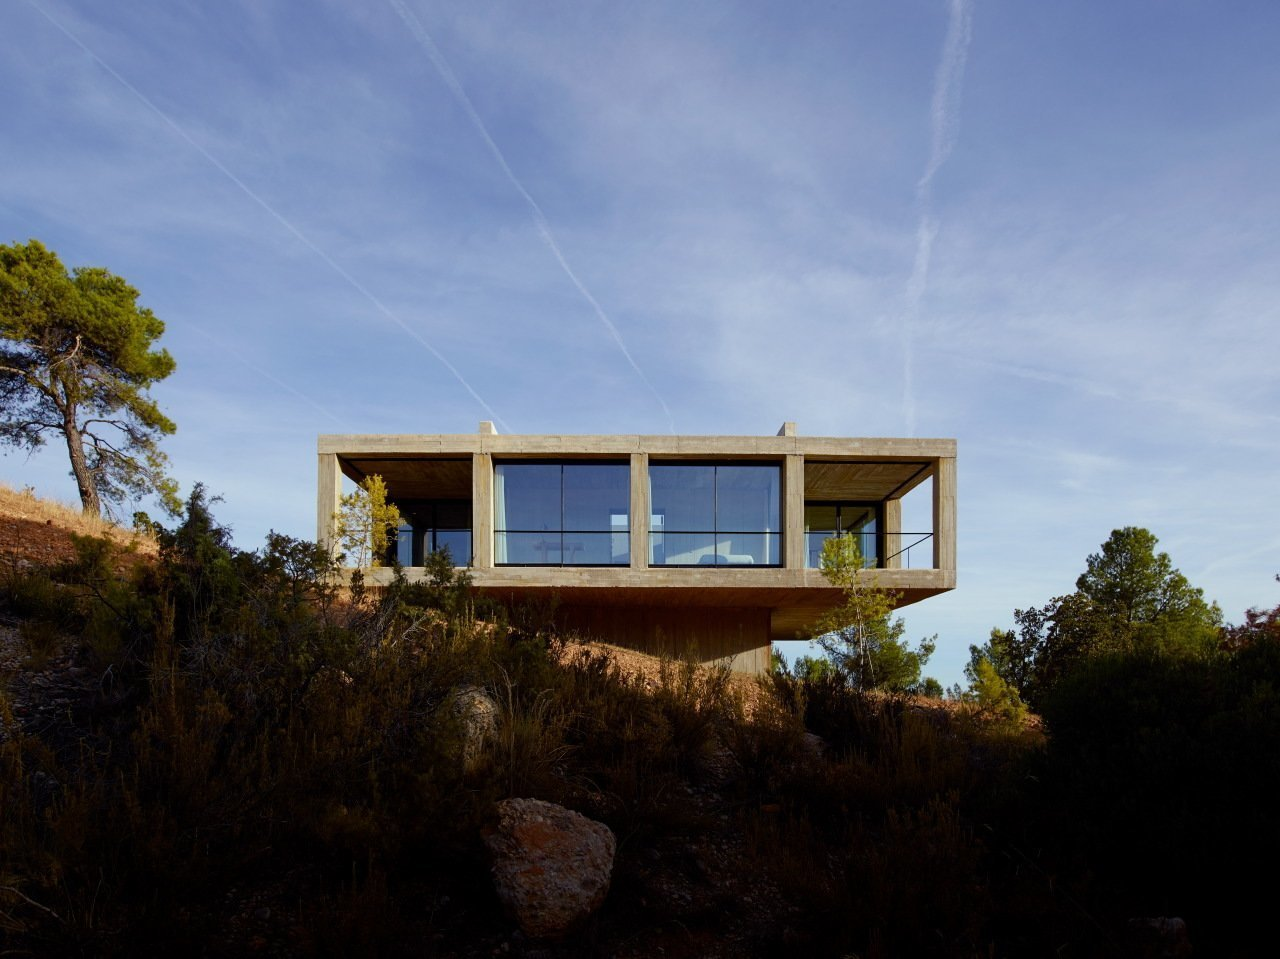 Trees, Shrubs, House, Outdoor, and Concrete  Best Outdoor House Concrete Photos from Stacked Concrete Squares Make Up This Incredible Vacation Home in Aragon, Spain